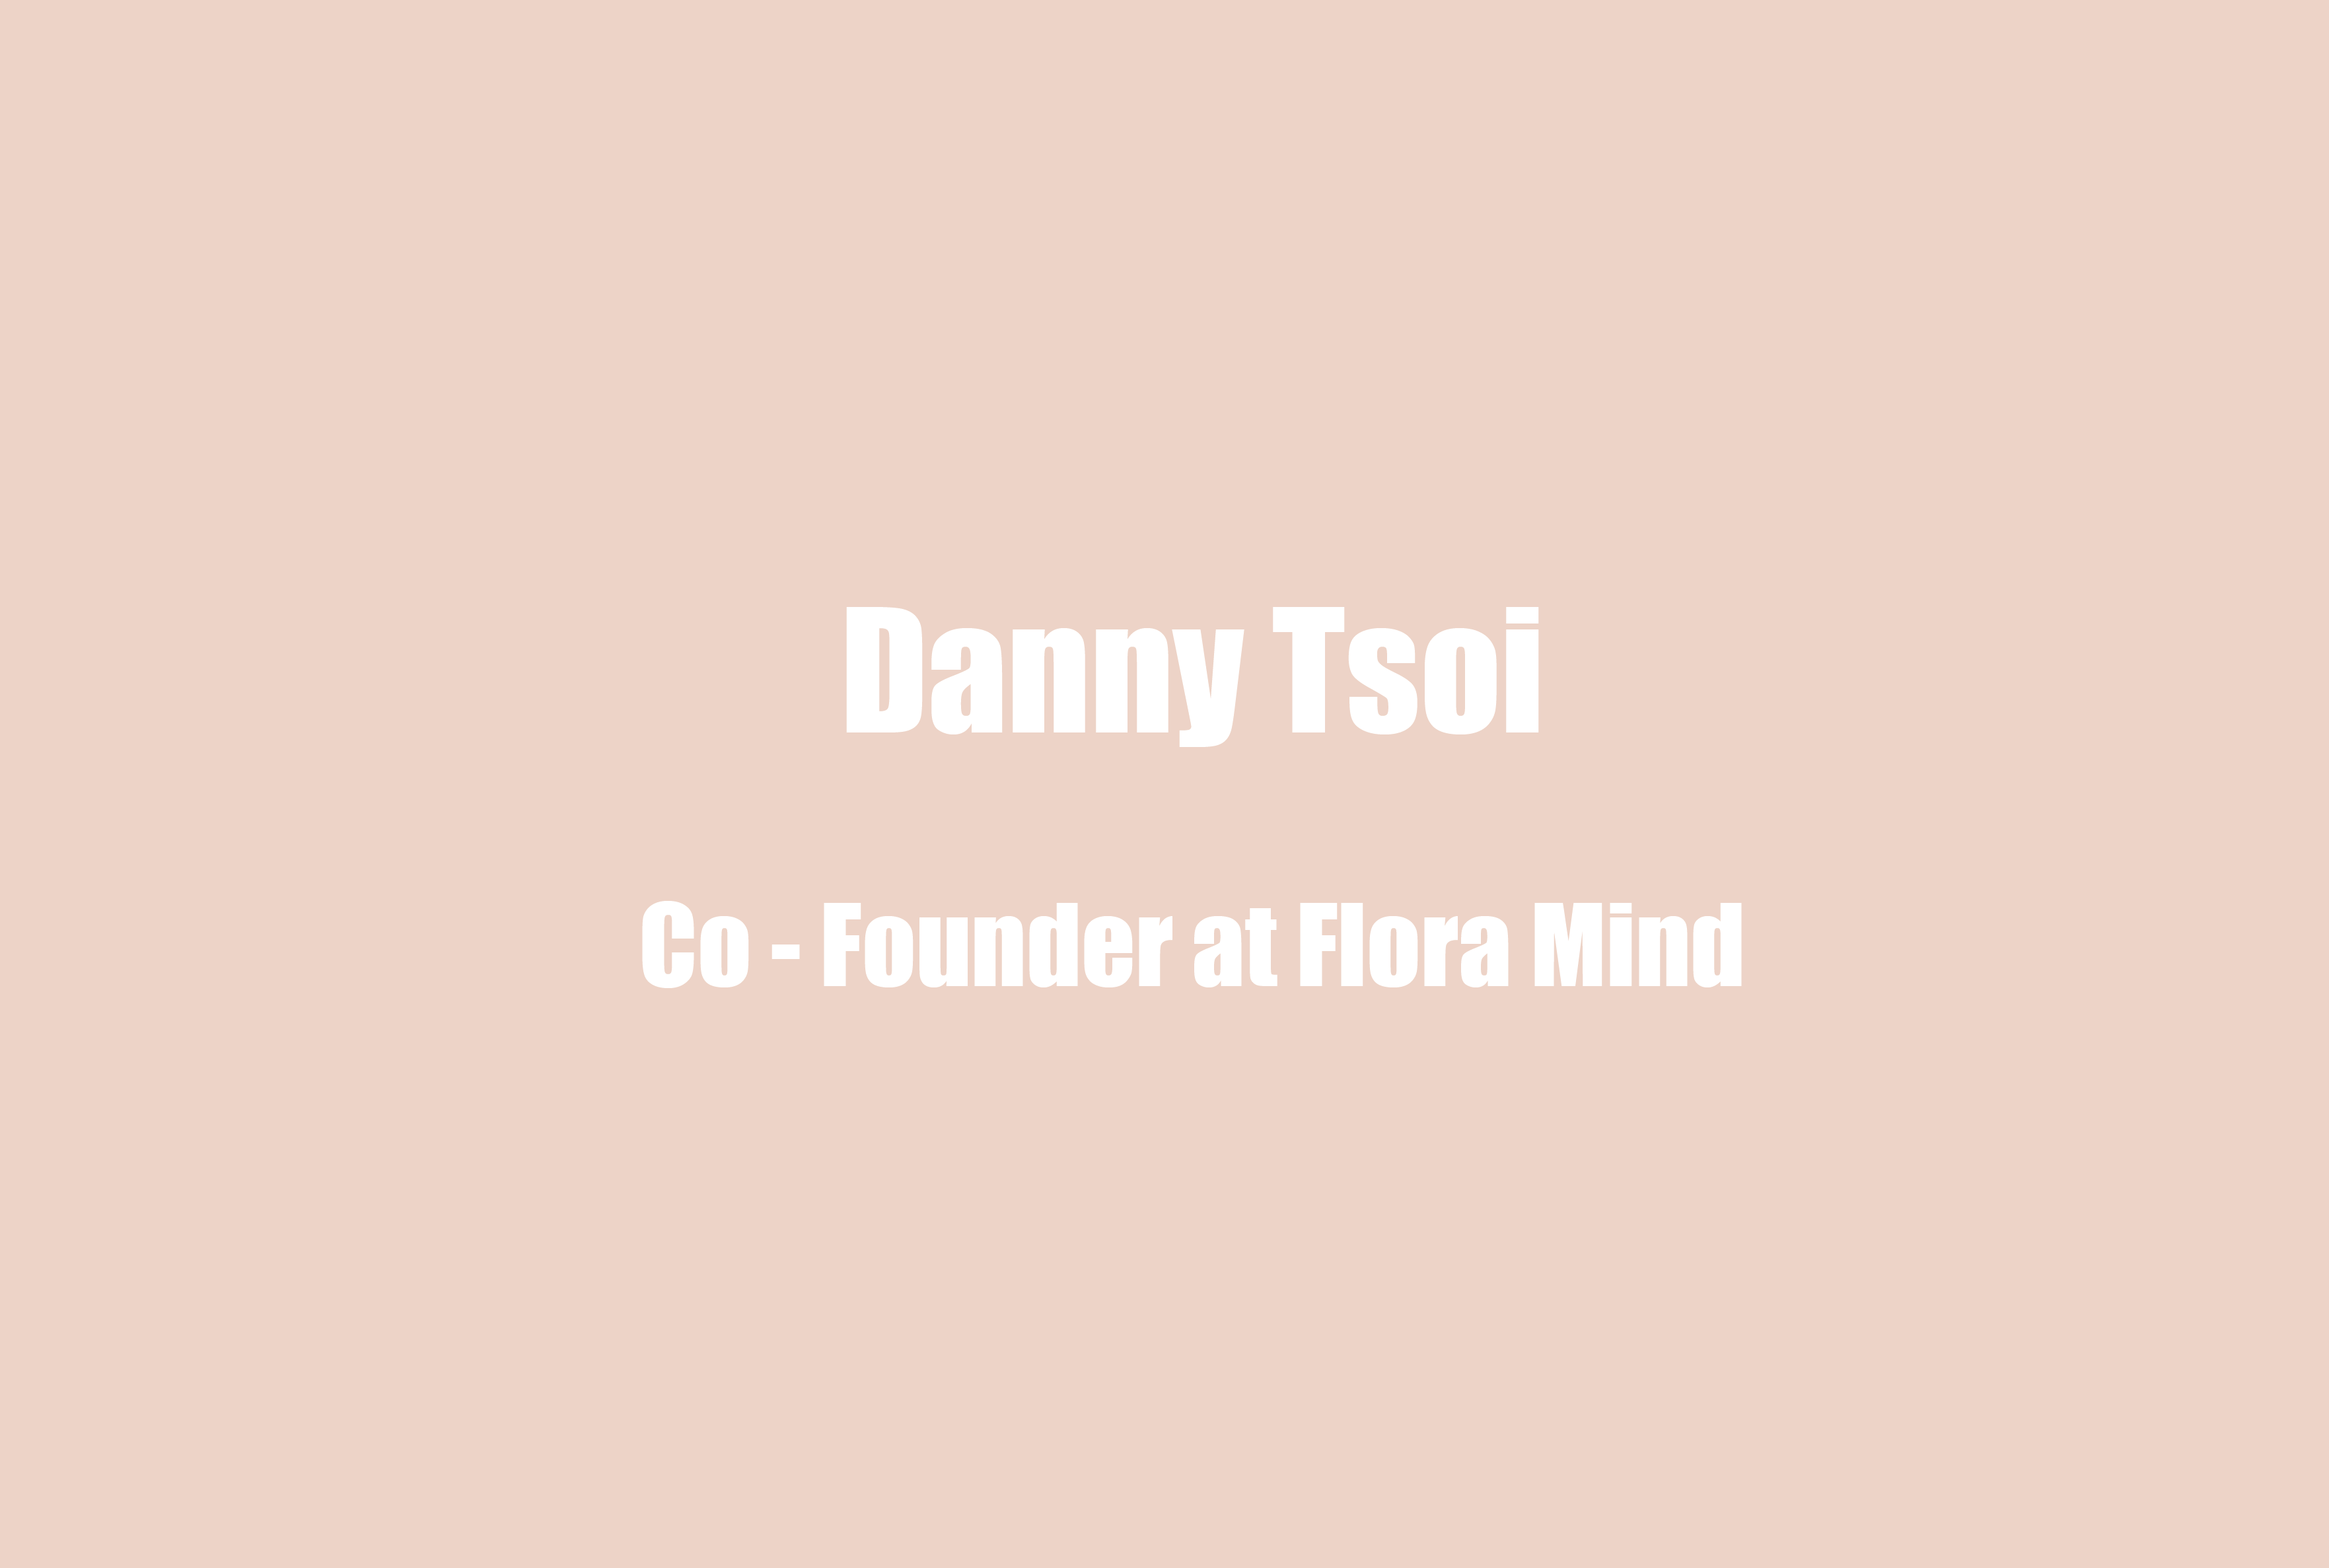 Co-founder and COO of FloraMind, Danny Tsoi, on Using Hiphop Music to Talk Mental Health with Youth, Differentiating Typical Youth Development from Mental Illness, and the Criticality of Checking In with Yourself to Protect your Wellbeing